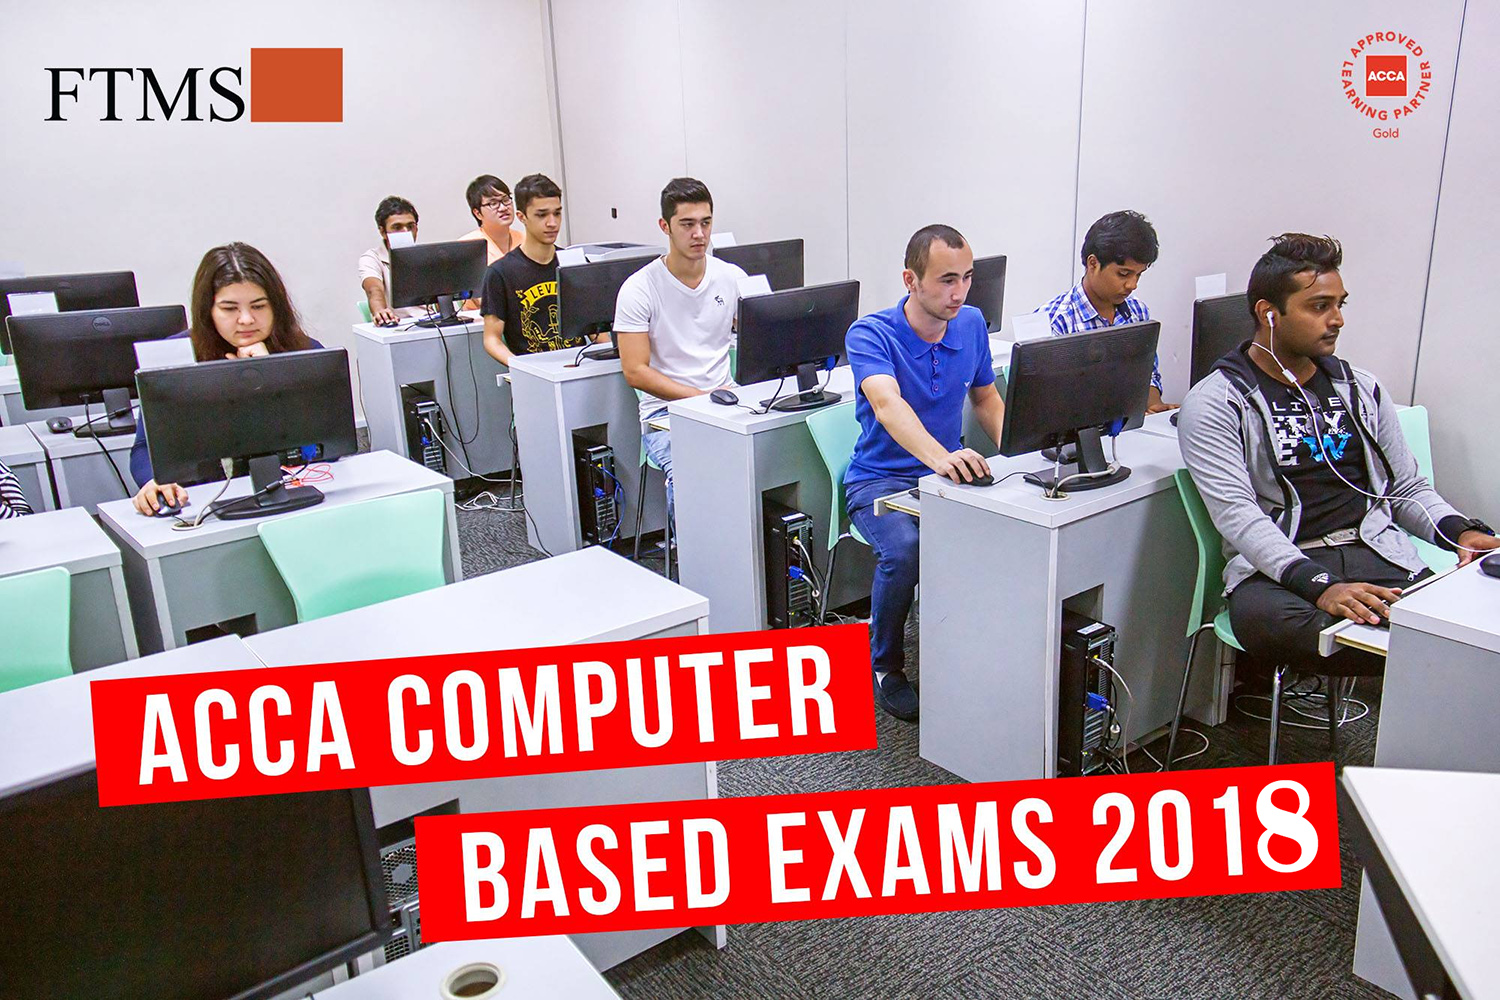 Computer-Based Exams - CBE (ACCA, FiA/CAT, MSER) | FTMS Singapore